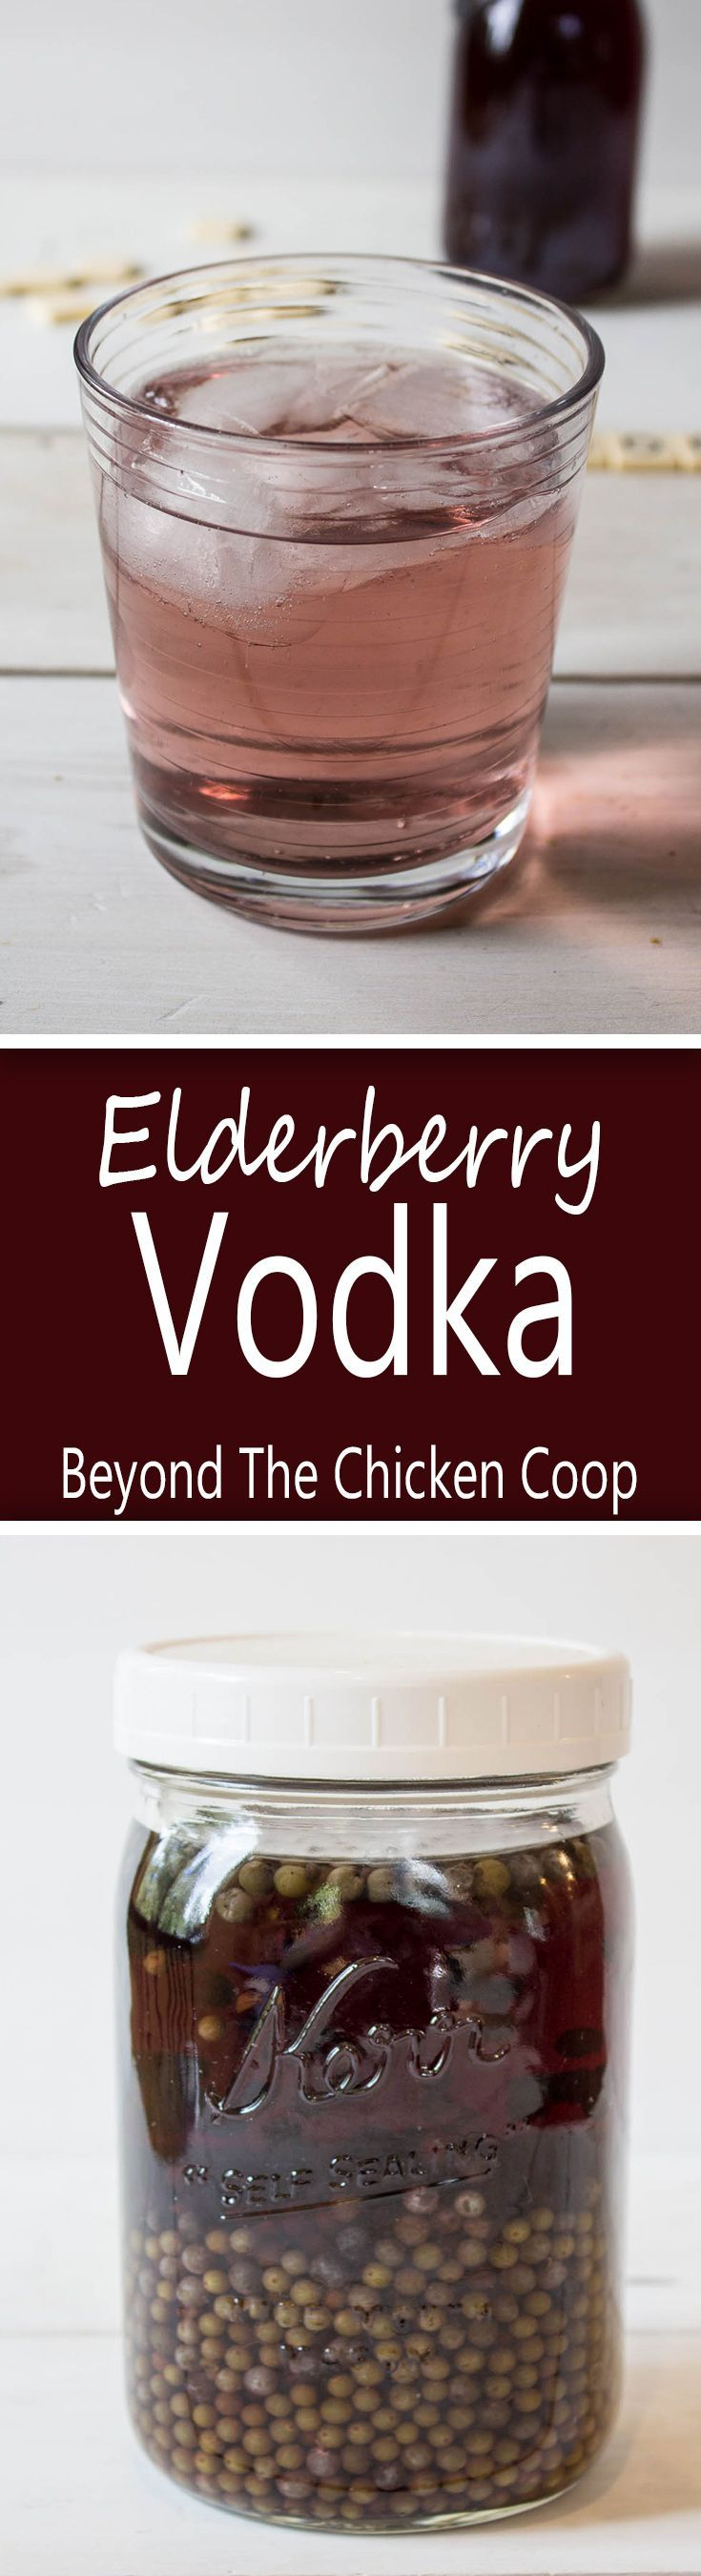 Elderberry Vodka!